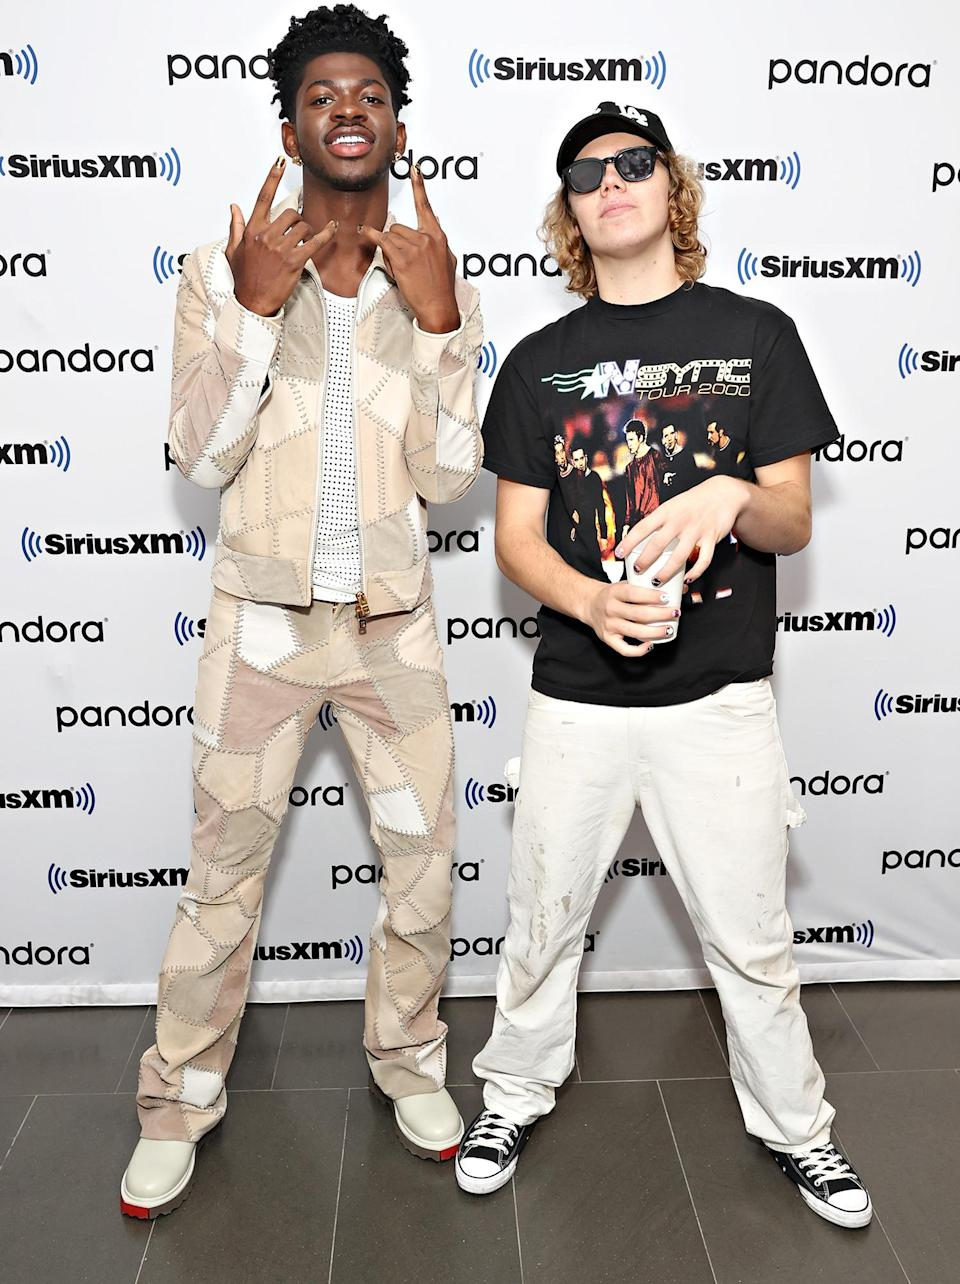 <p>Lil Nas X and The Kid LAROI visit the SiriusXM Studios on Sept. 14 in N.Y.C.</p>